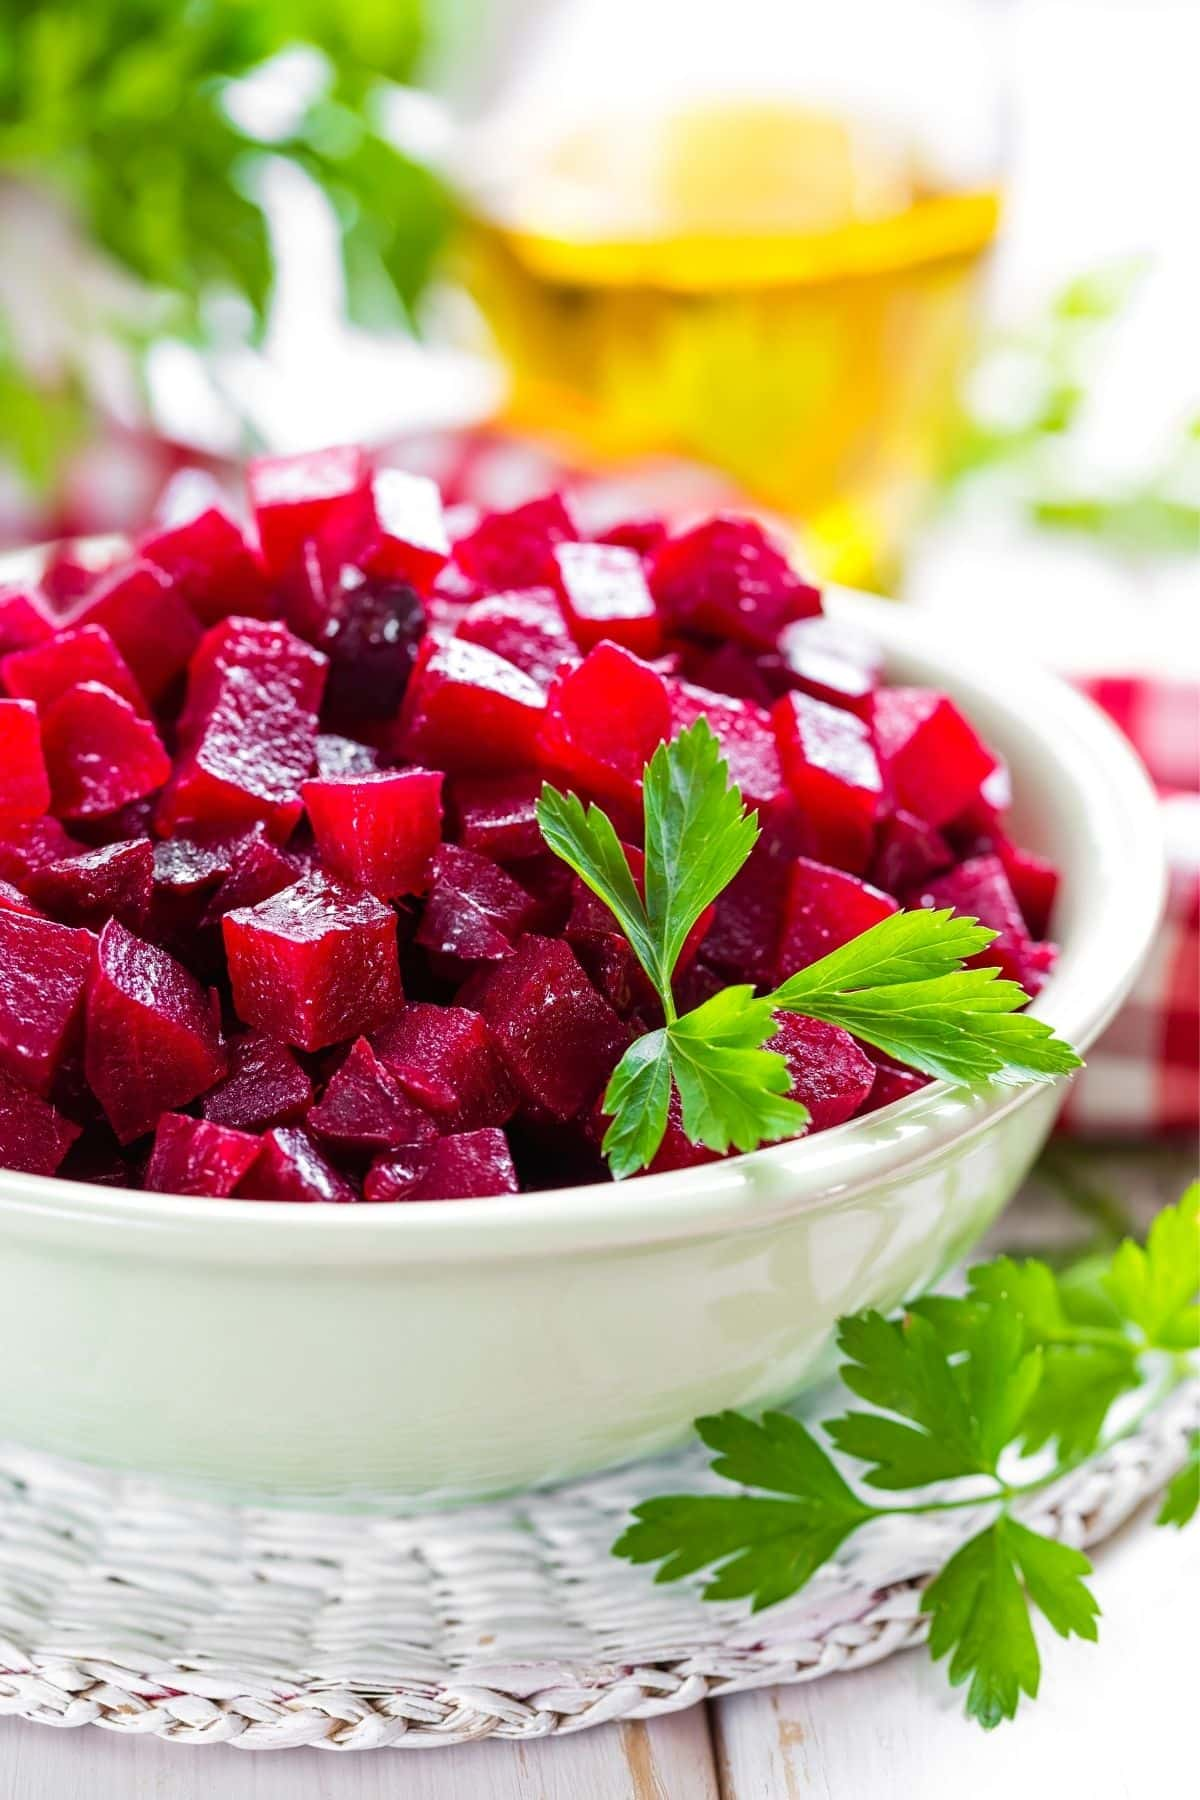 beet salad in a white bowl with olive oil